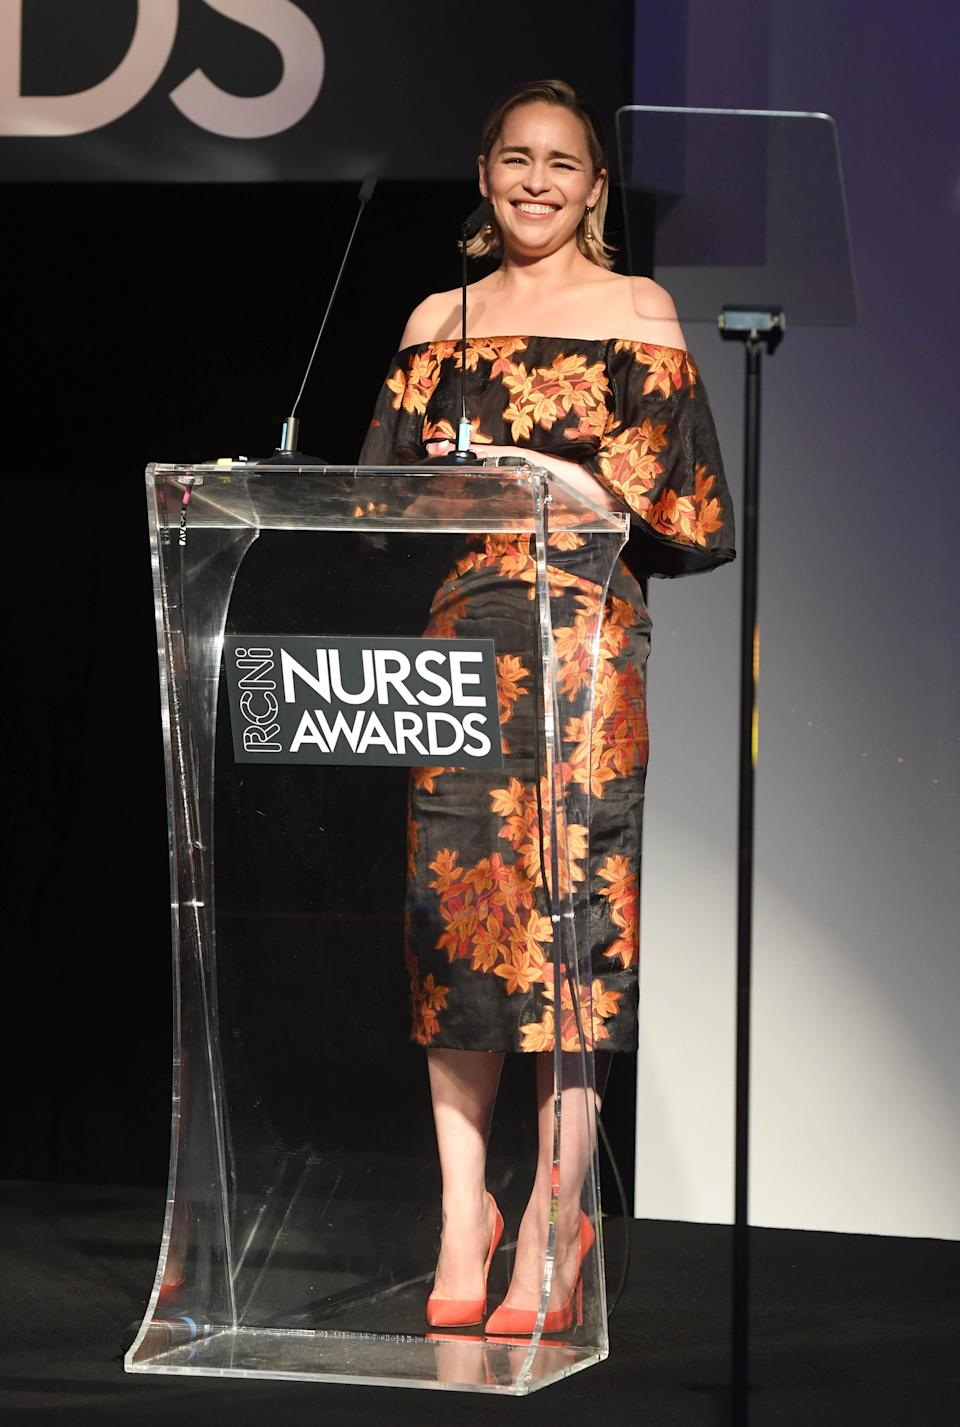 <p>On 4 July, 'Game of Thrones' actress Emilia Clarke introduced the Nurse Awards in a cold-shoulder floral dress accessorised with Tiffany & Co jewels. <em>[Photo: Getty]</em> </p>